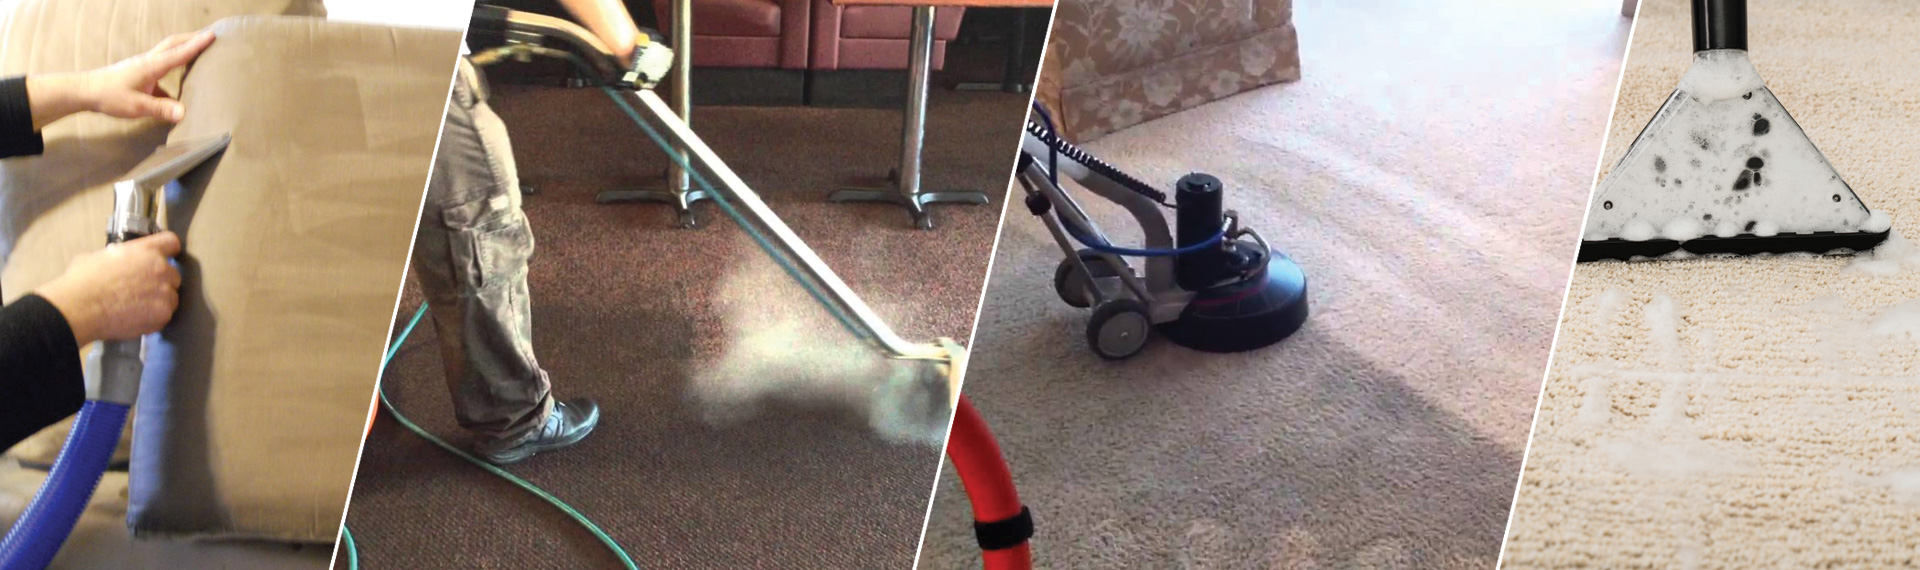 Miracle Carpet Care LLC West Bloomfield Township MI